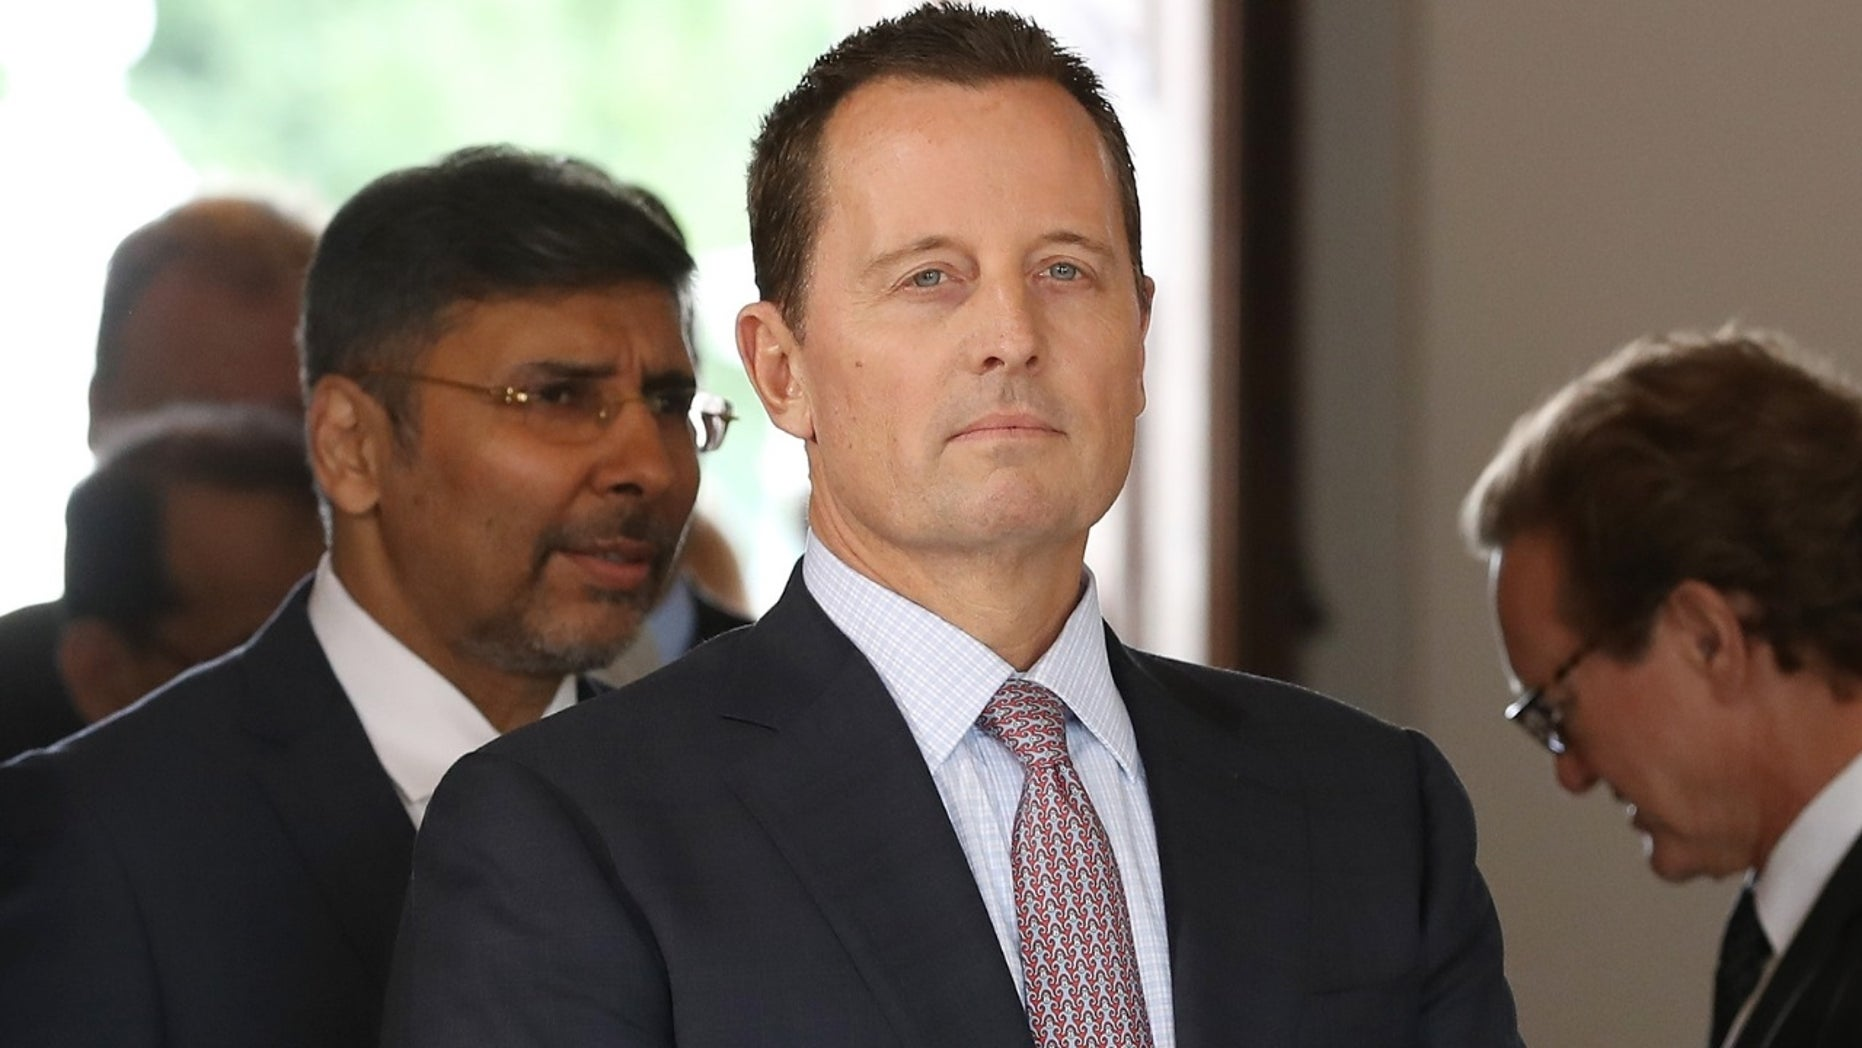 U.S. Ambassador Richard Grenell commented on Germany's defense spending target.